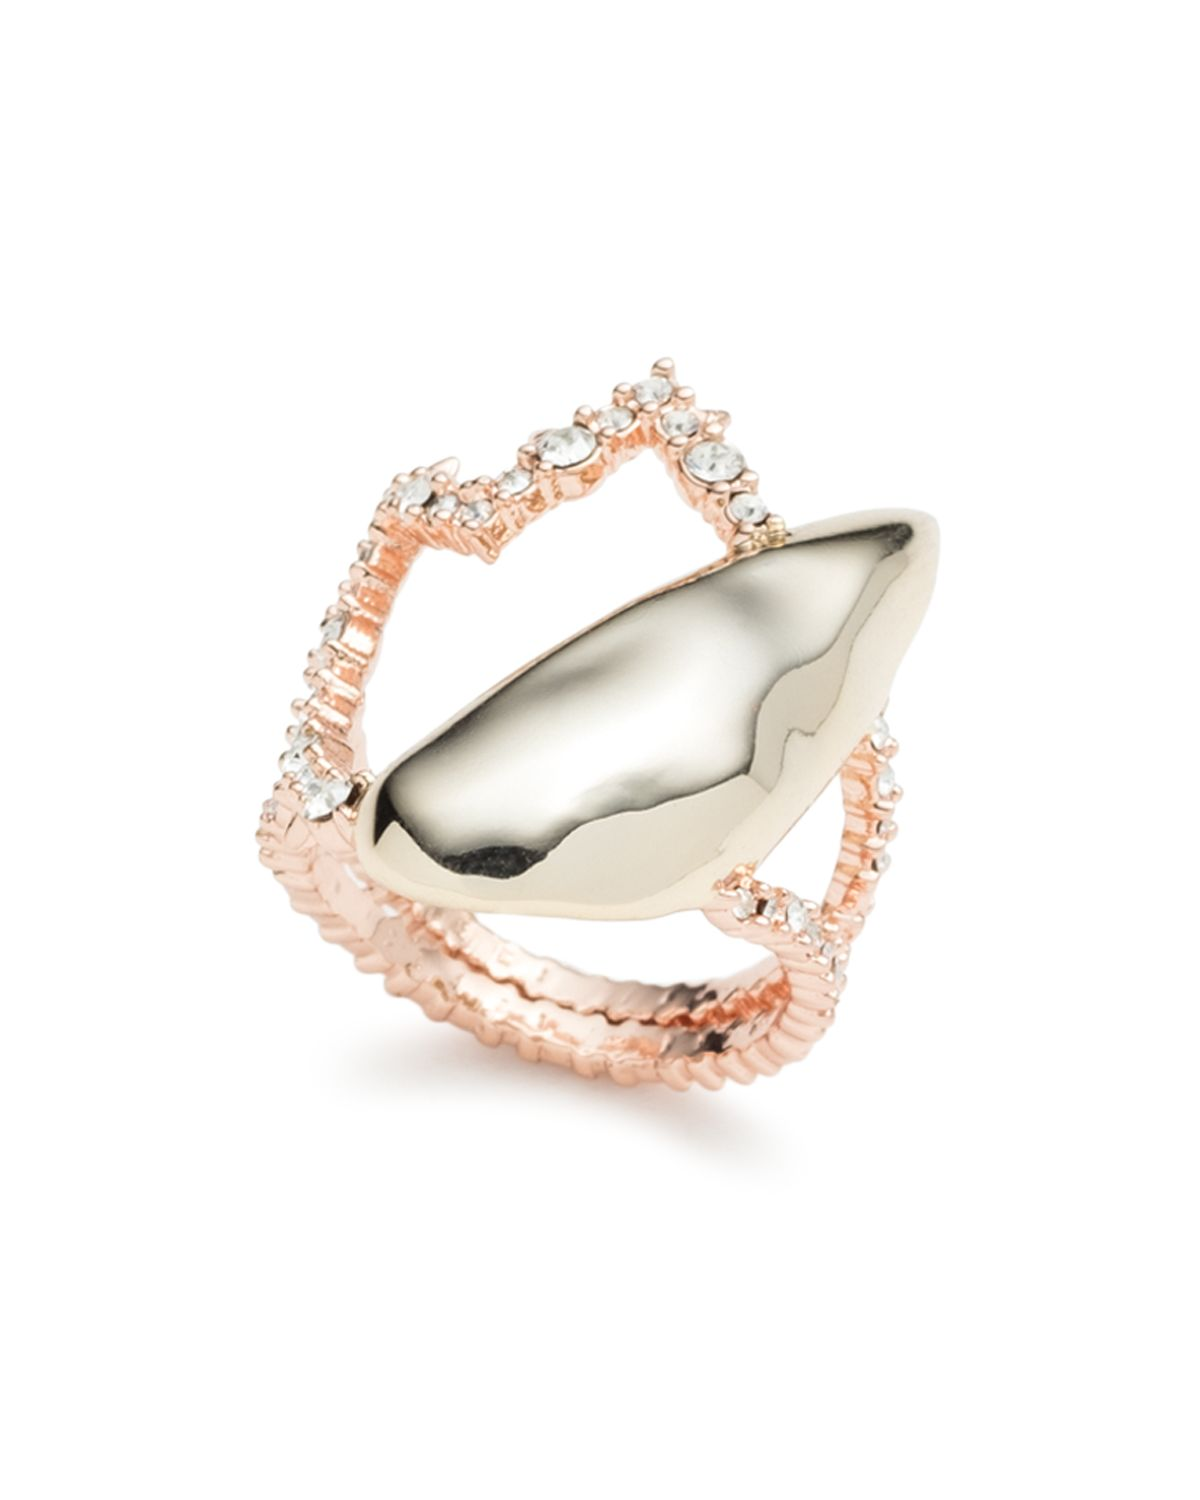 Tulip Cocktail Ring by Alexis Bittar